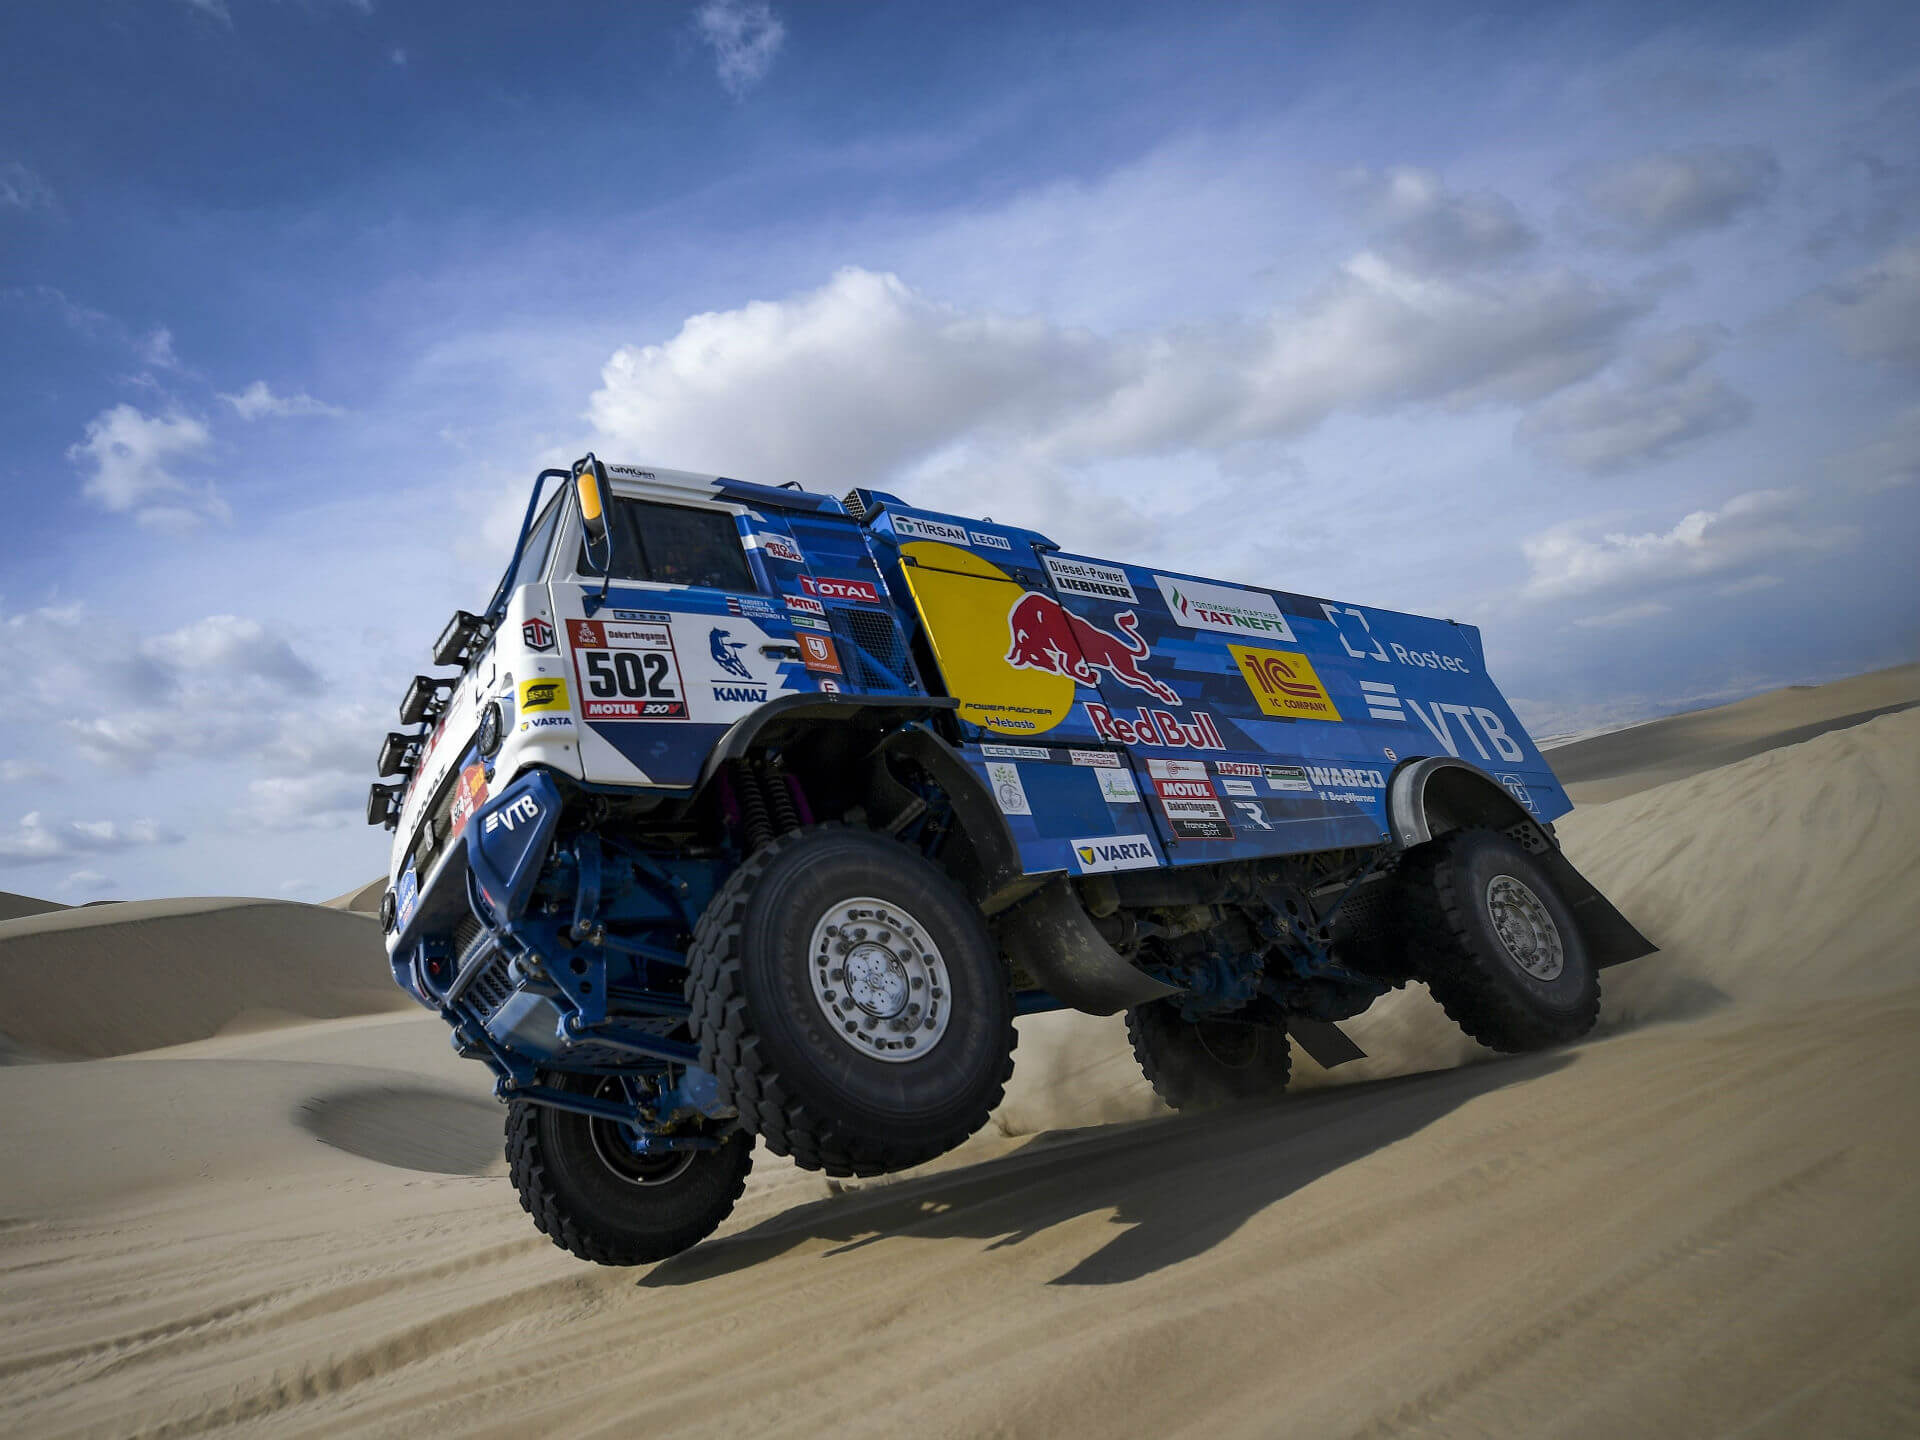 KAMAZ Dakar truck in Peru Rally